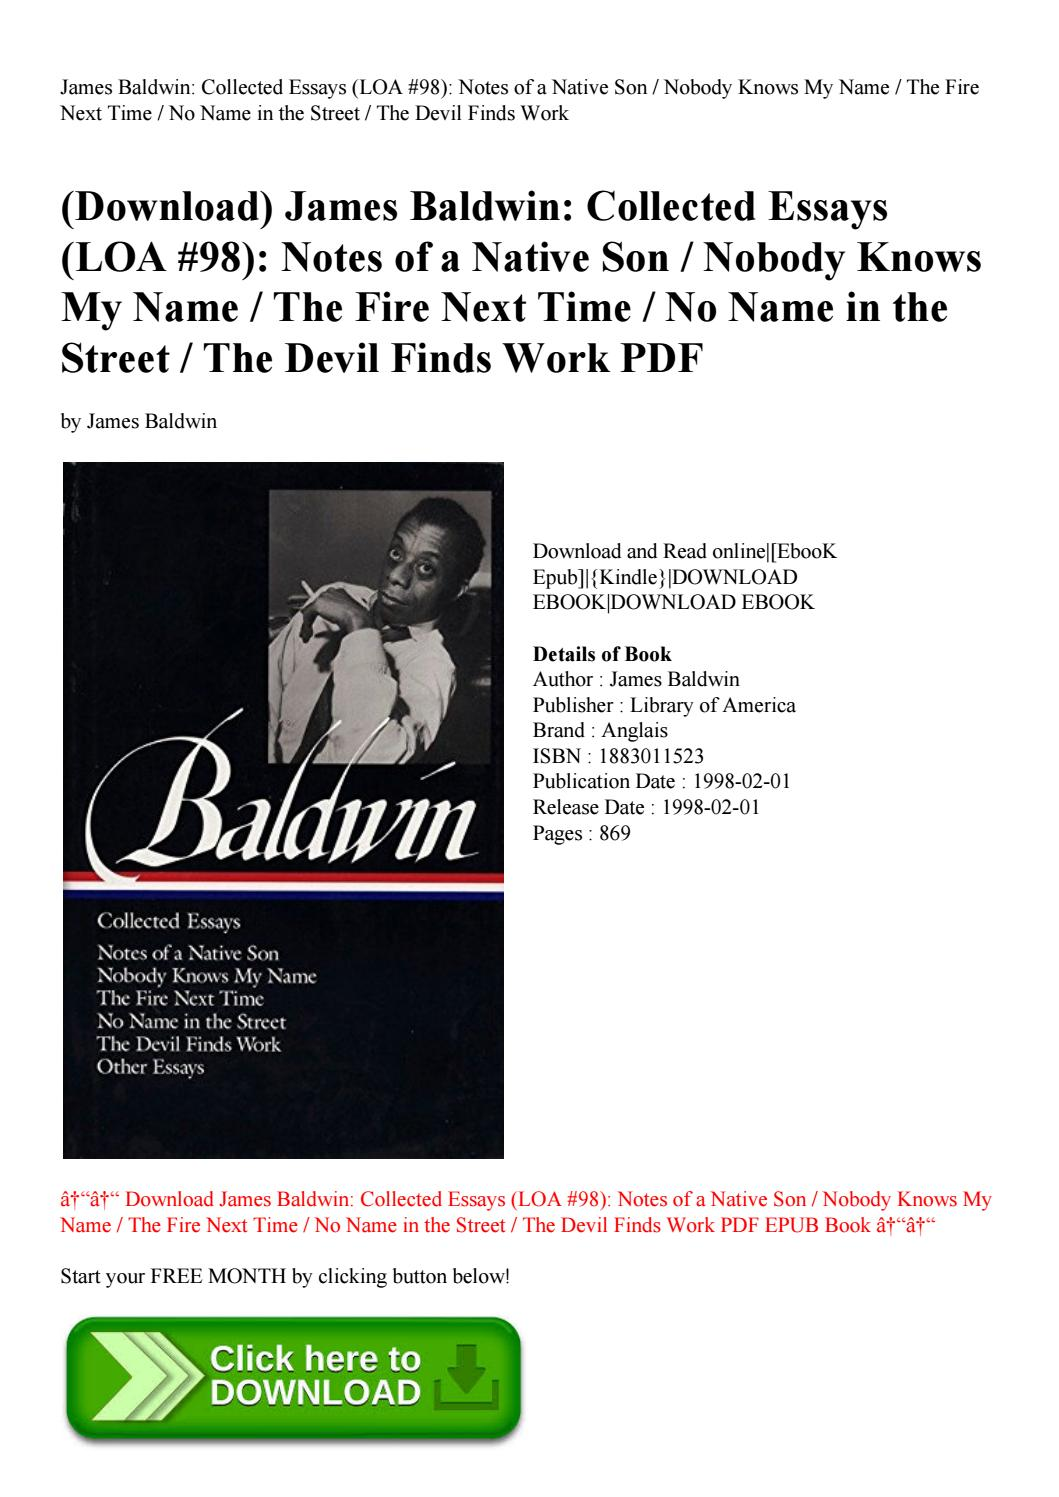 010 Page 1 Essay Example James Baldwin Collected Wondrous Essays Google Books Pdf Table Of Contents Full